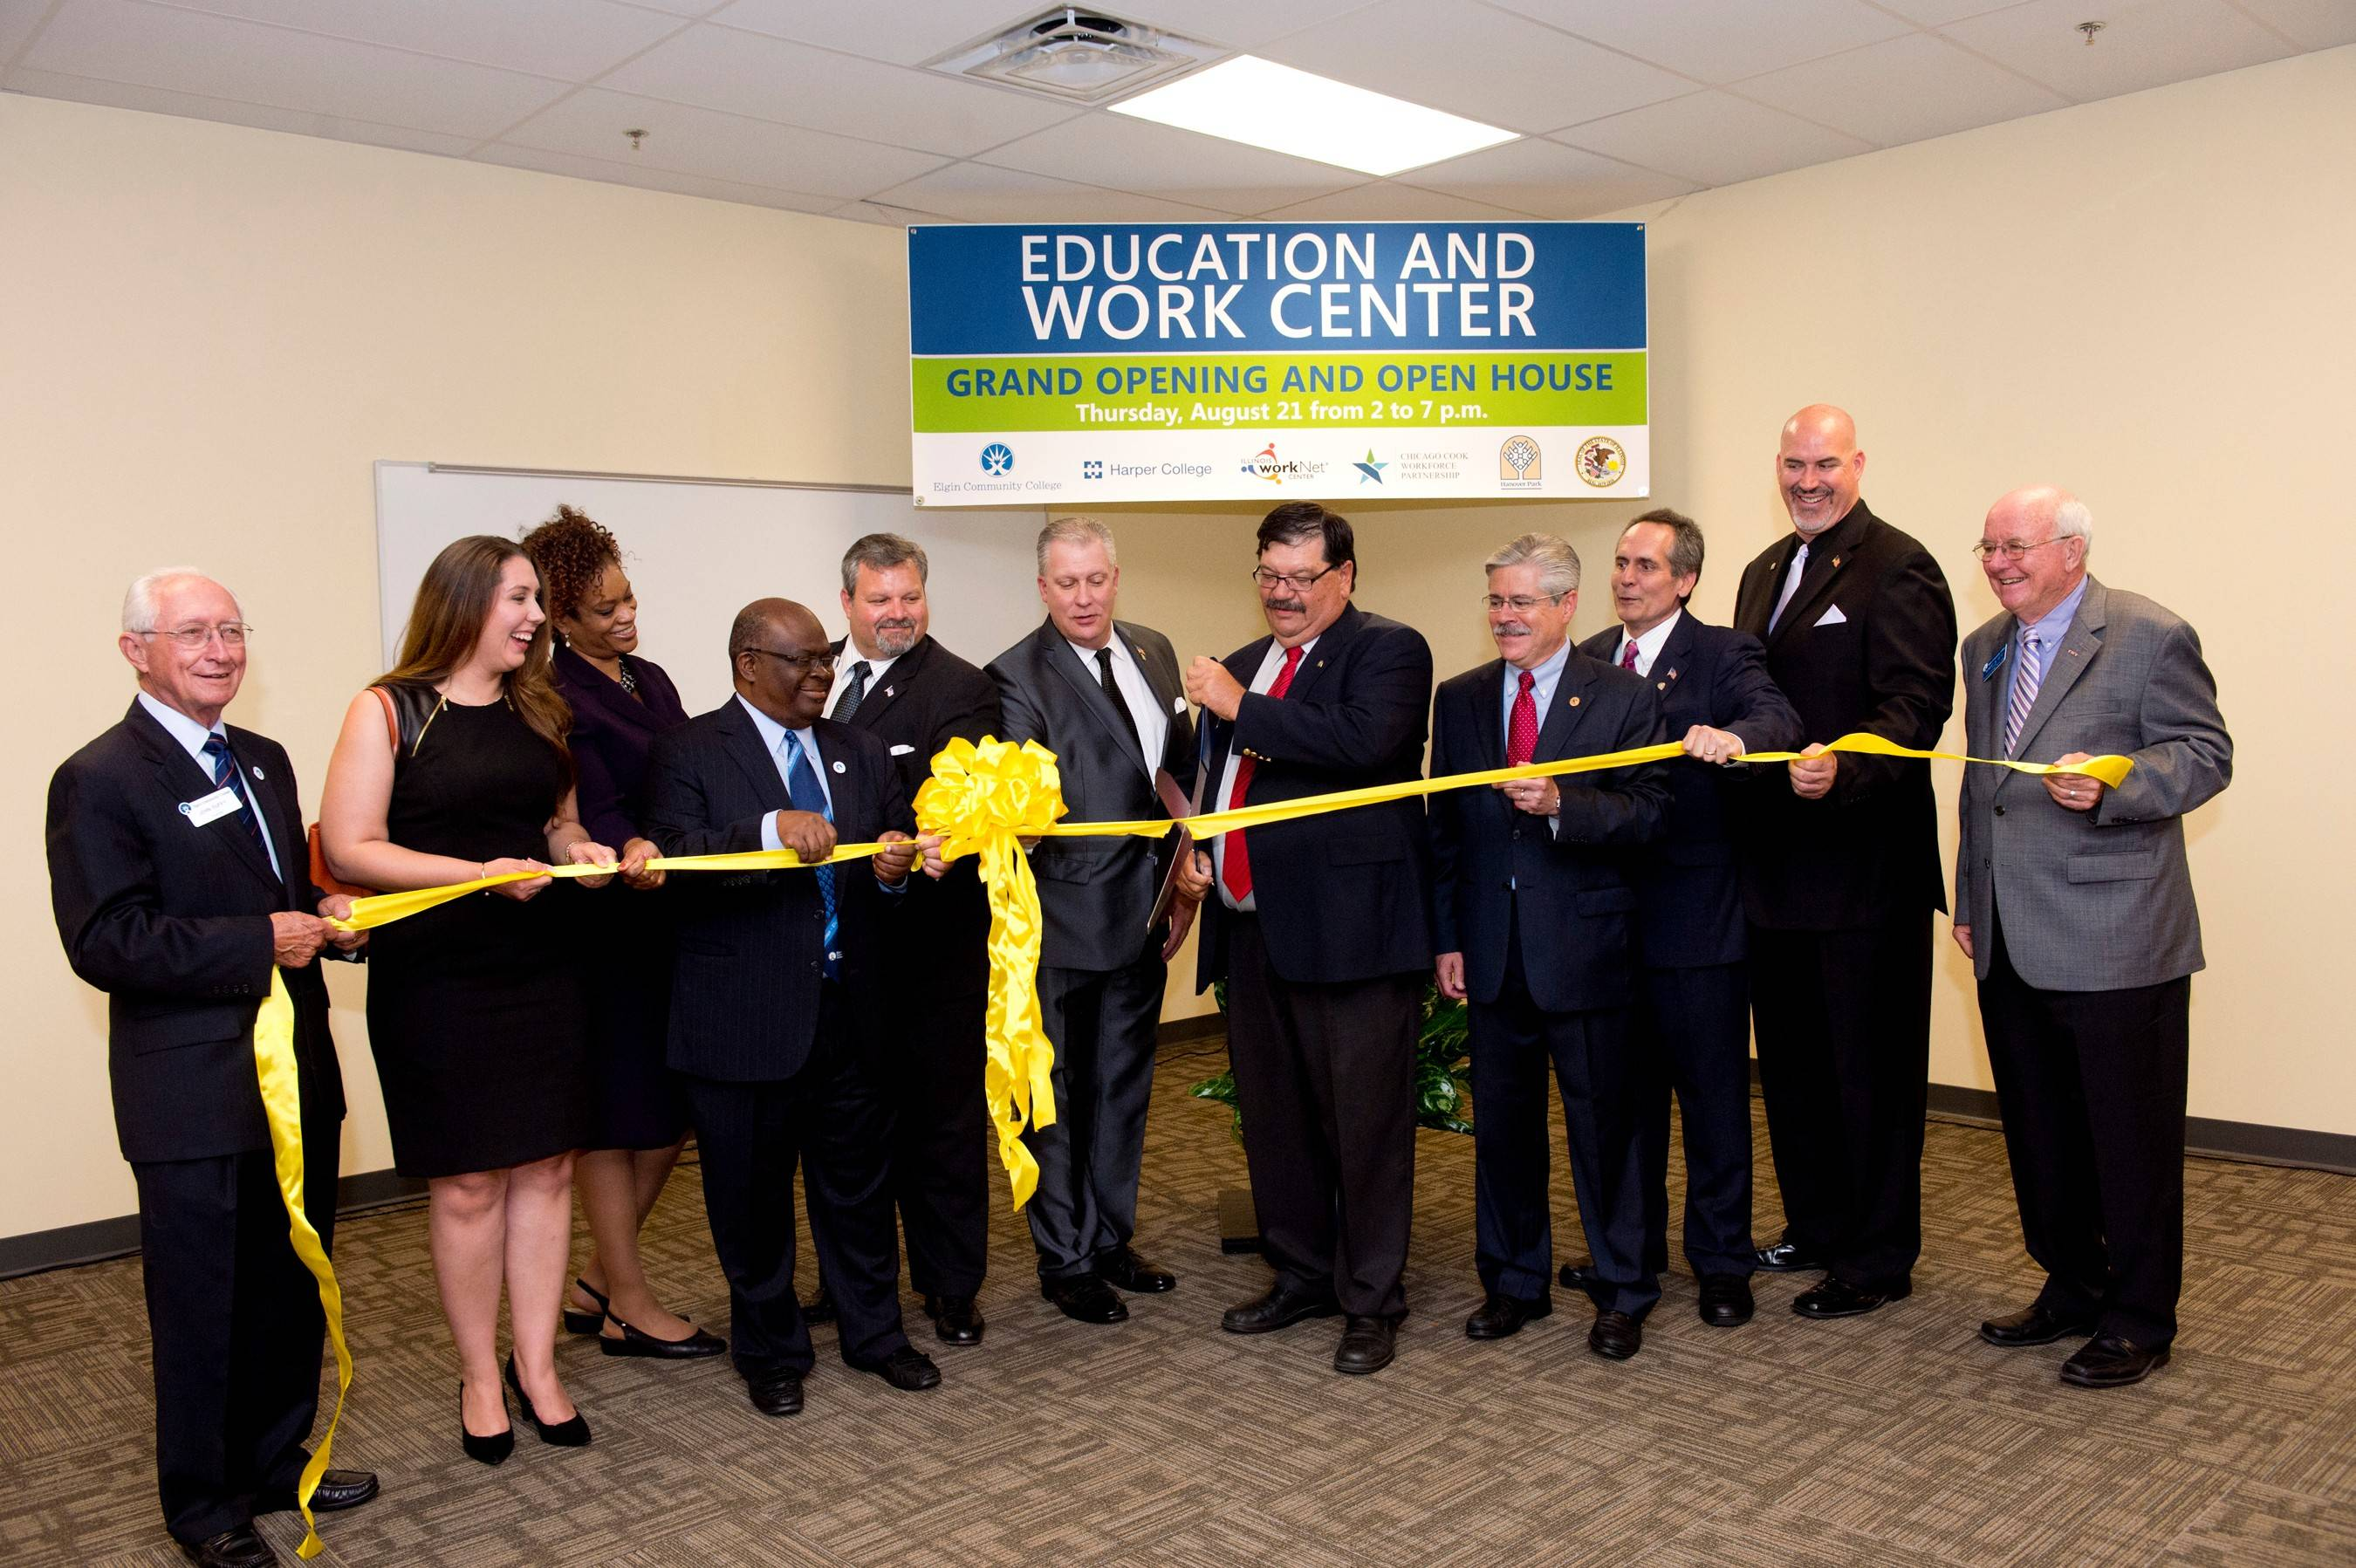 """We had a grand opening, and it rained like the devil that night,"" Hanover Park Mayor Rodney Craig said of a leaky roof at the new Education and Work Center."